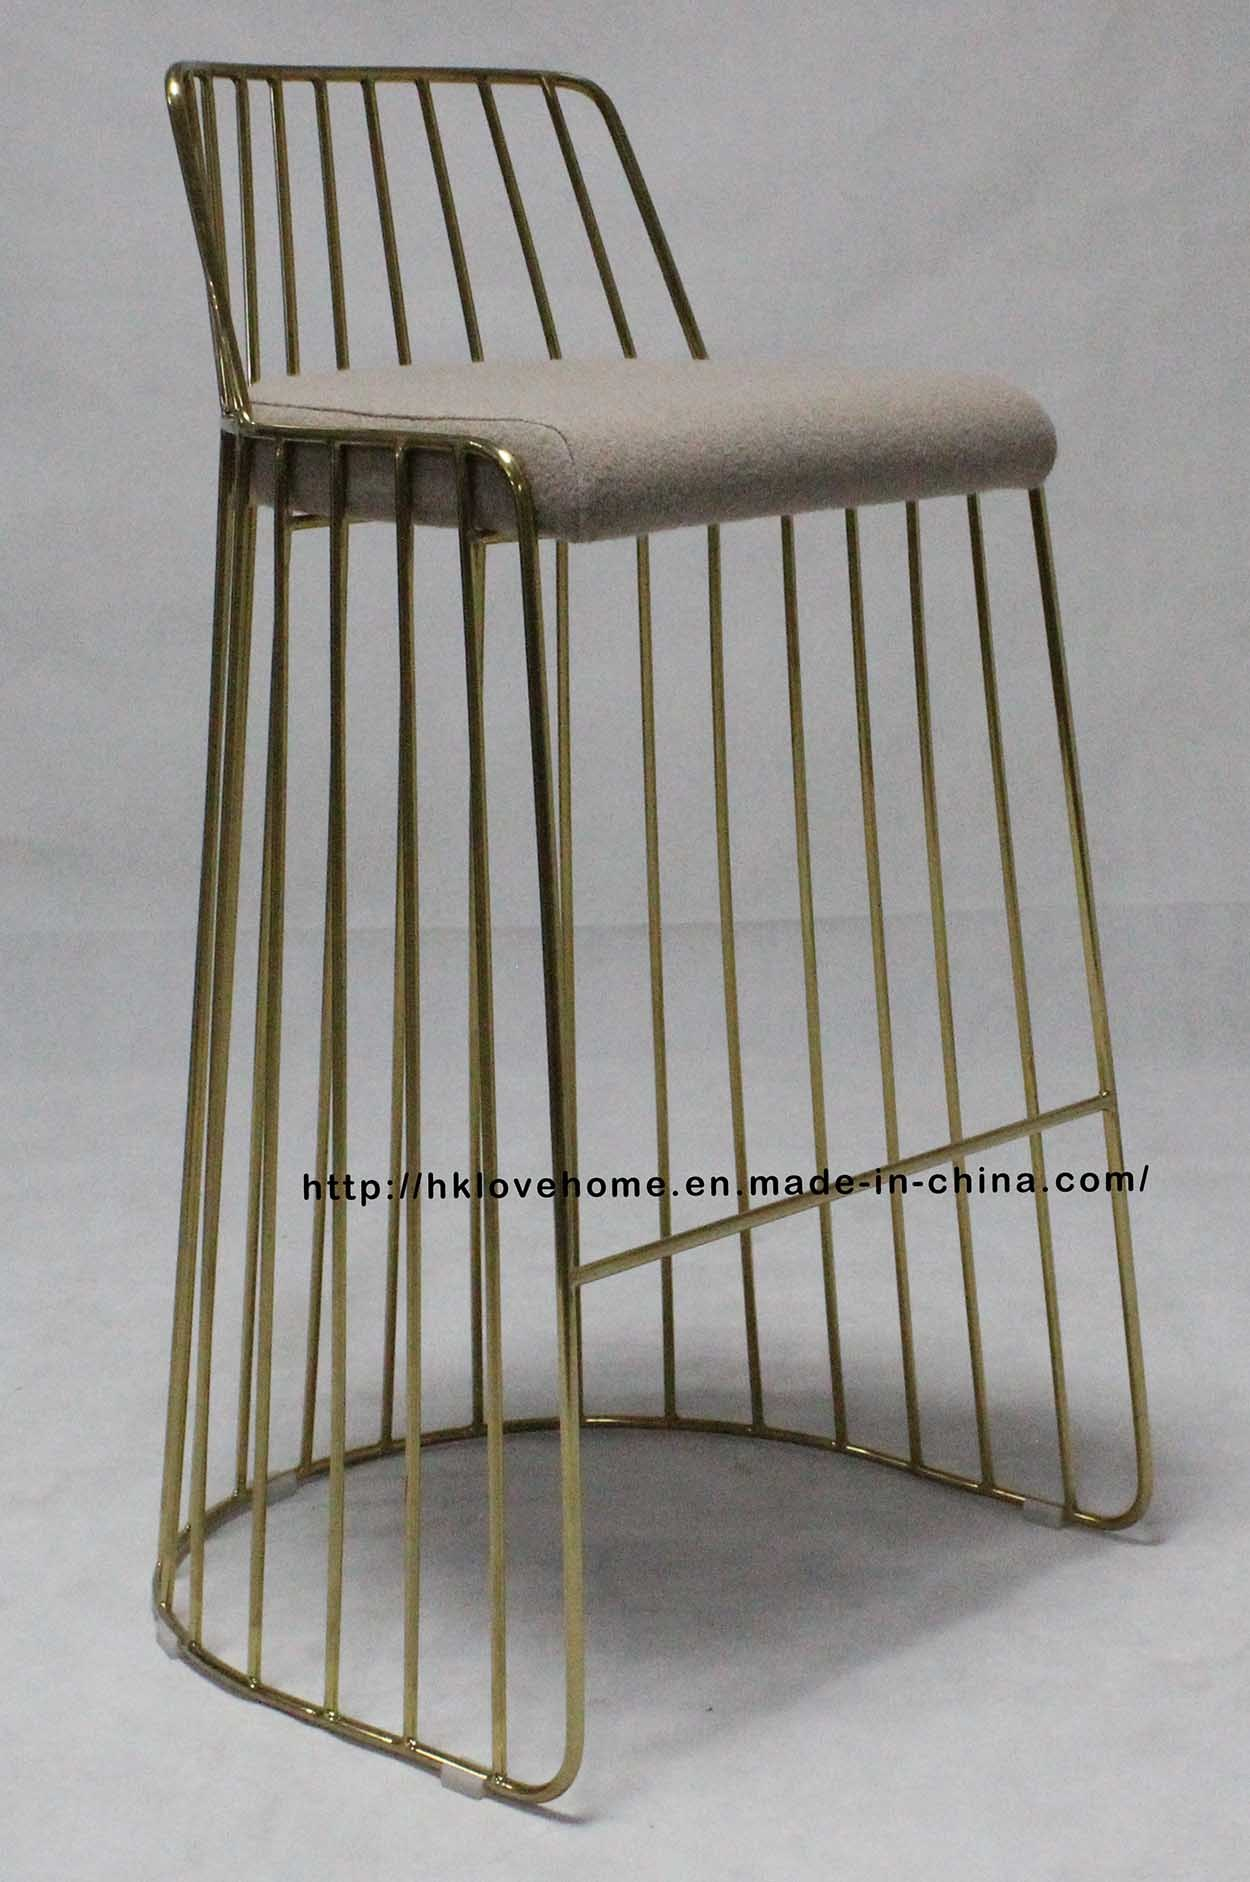 China metal restaurant outdoor furniture strings wire dining bar chairs china chairs dining chairs